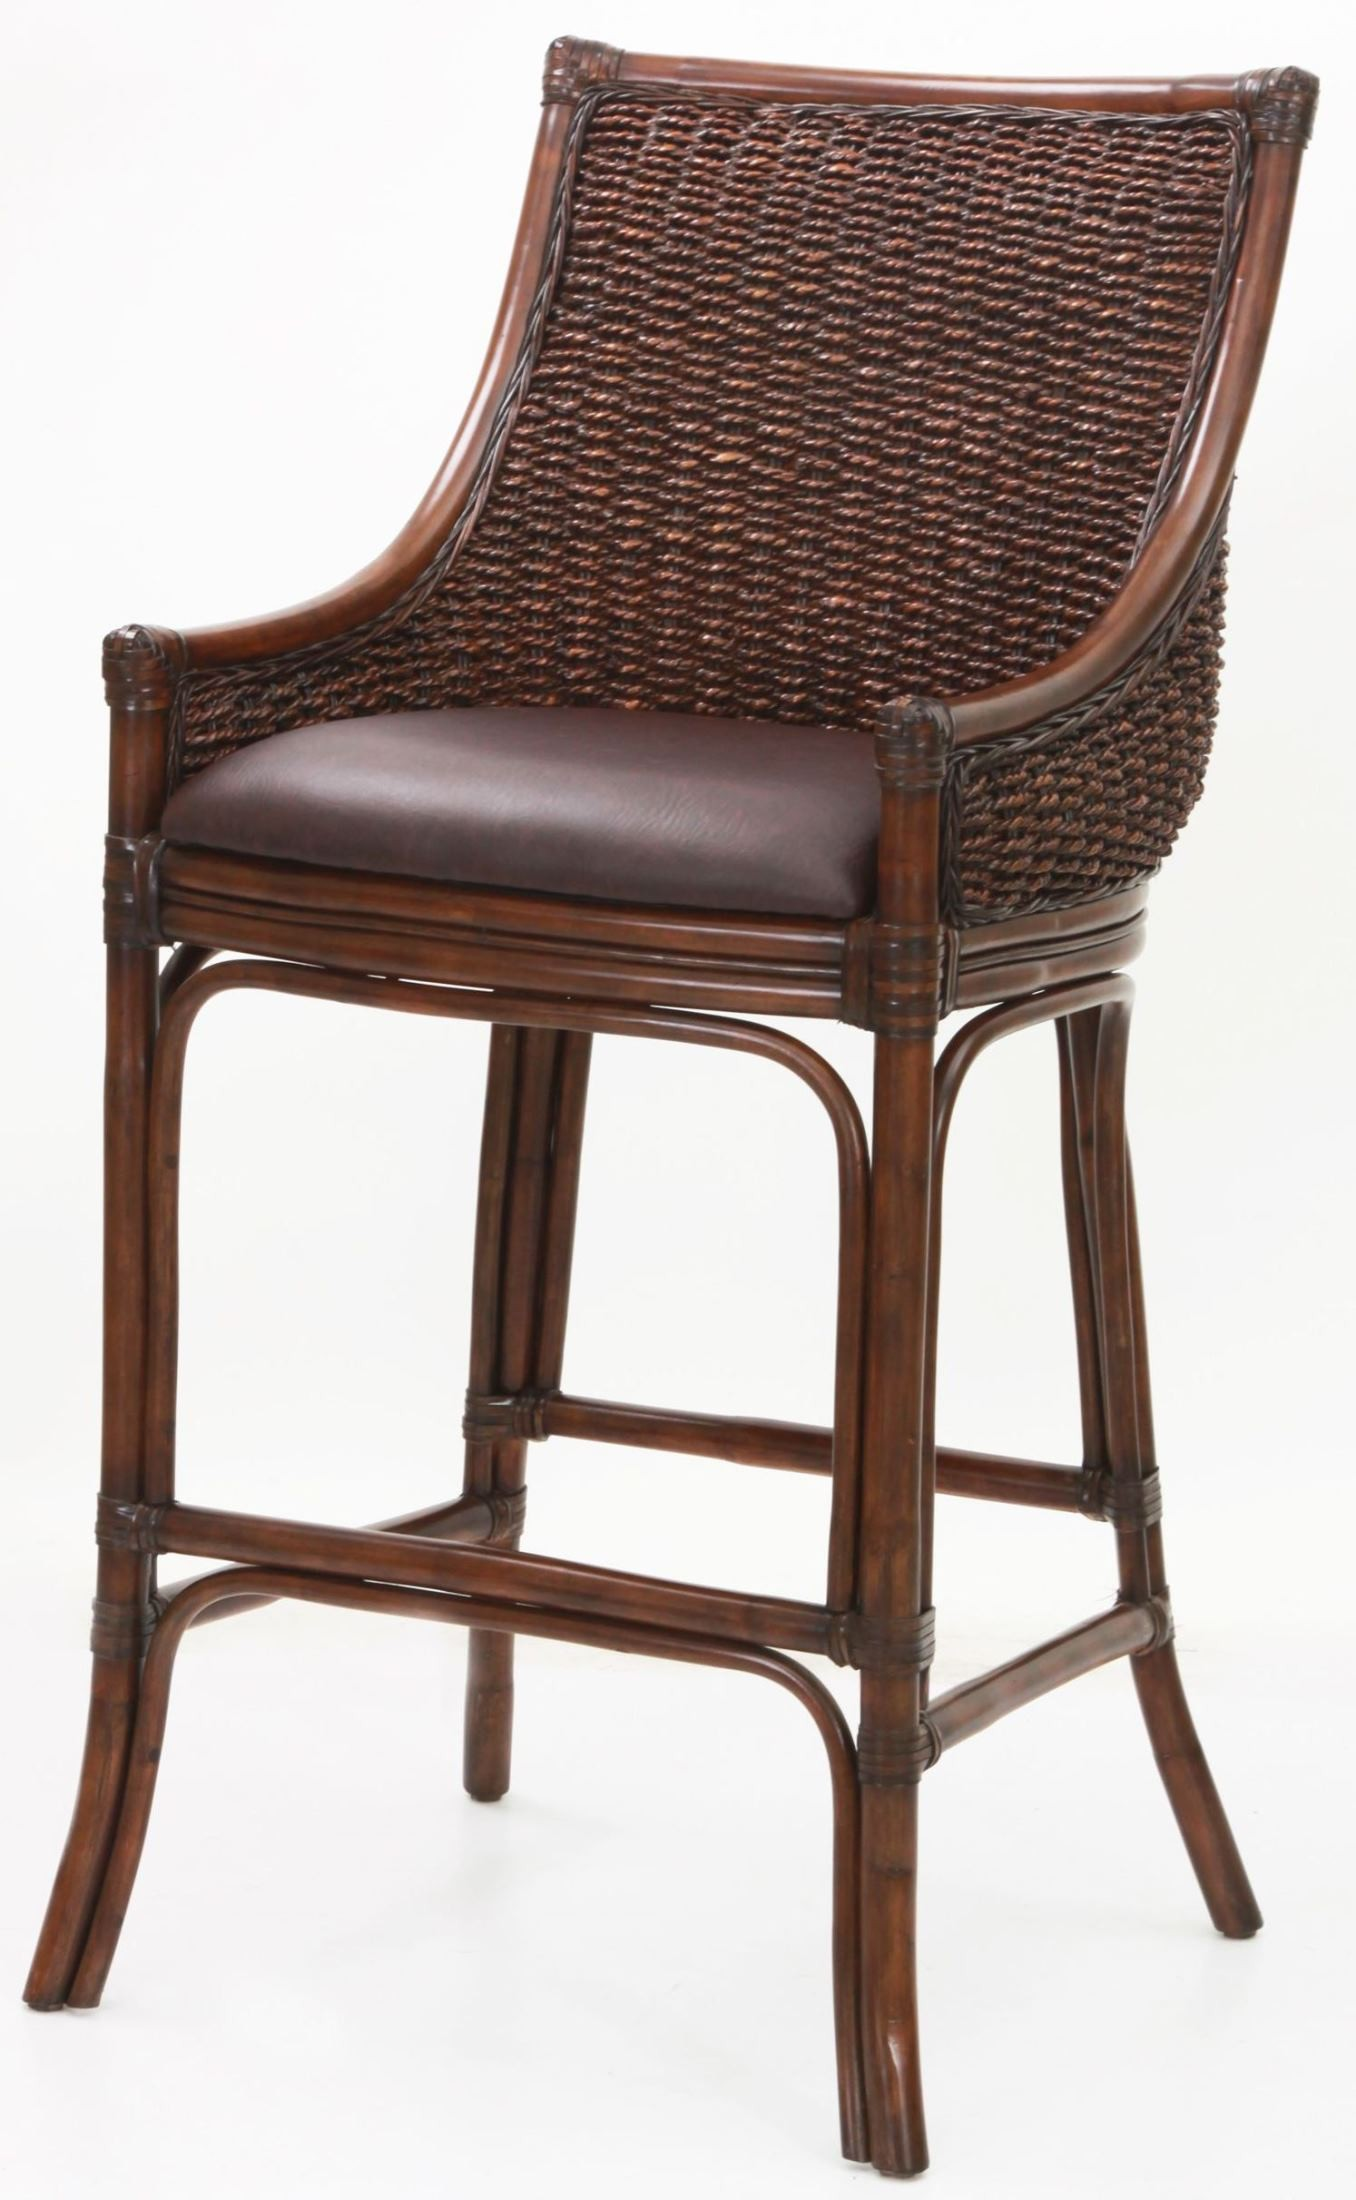 Woven back 26 rattan frame stool from american for American rattan furniture manufacturer